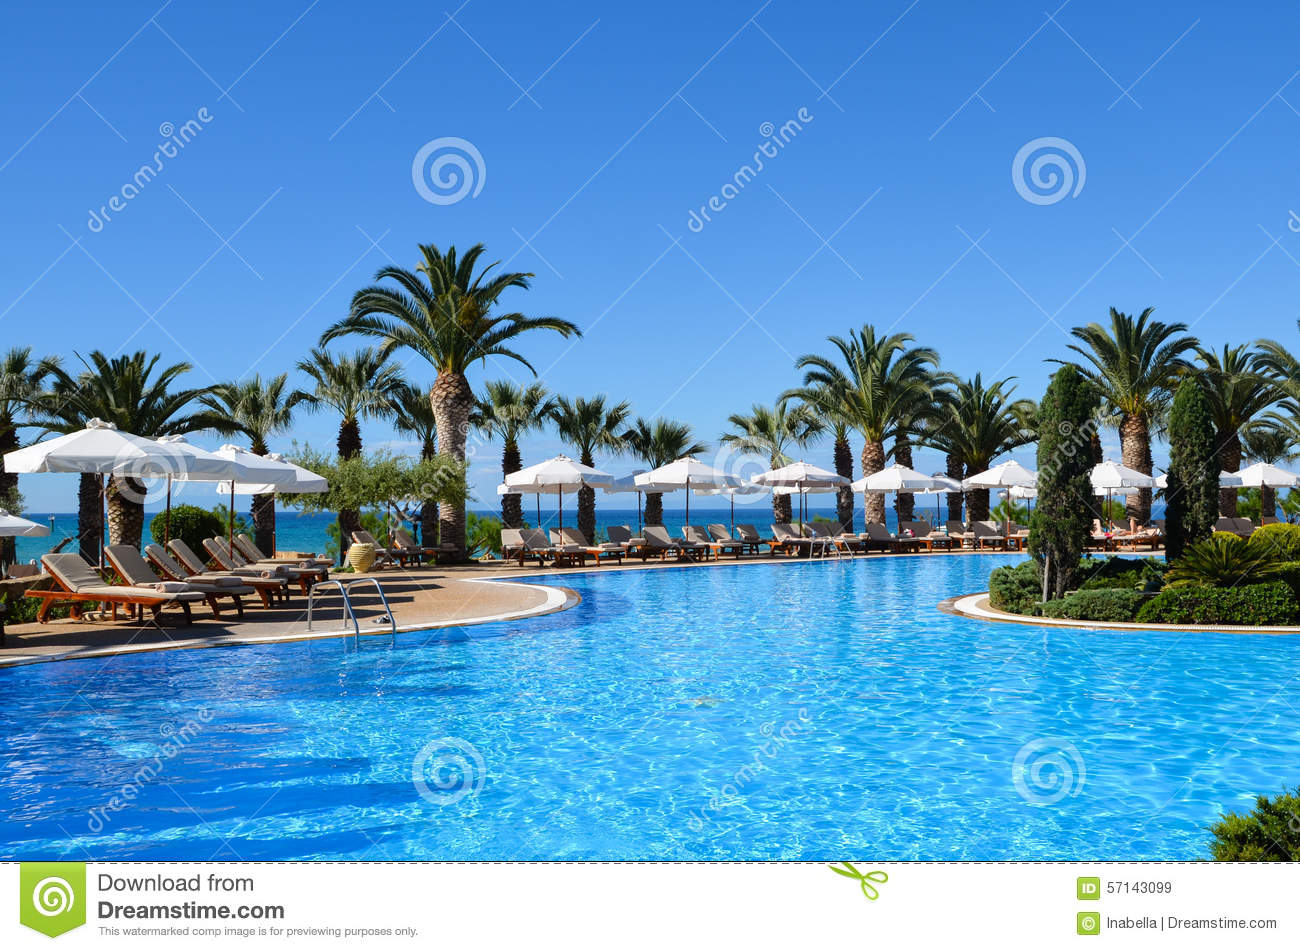 Beautiful swimming pool of a luxury hotel with sun baths Swimming pool beautiful